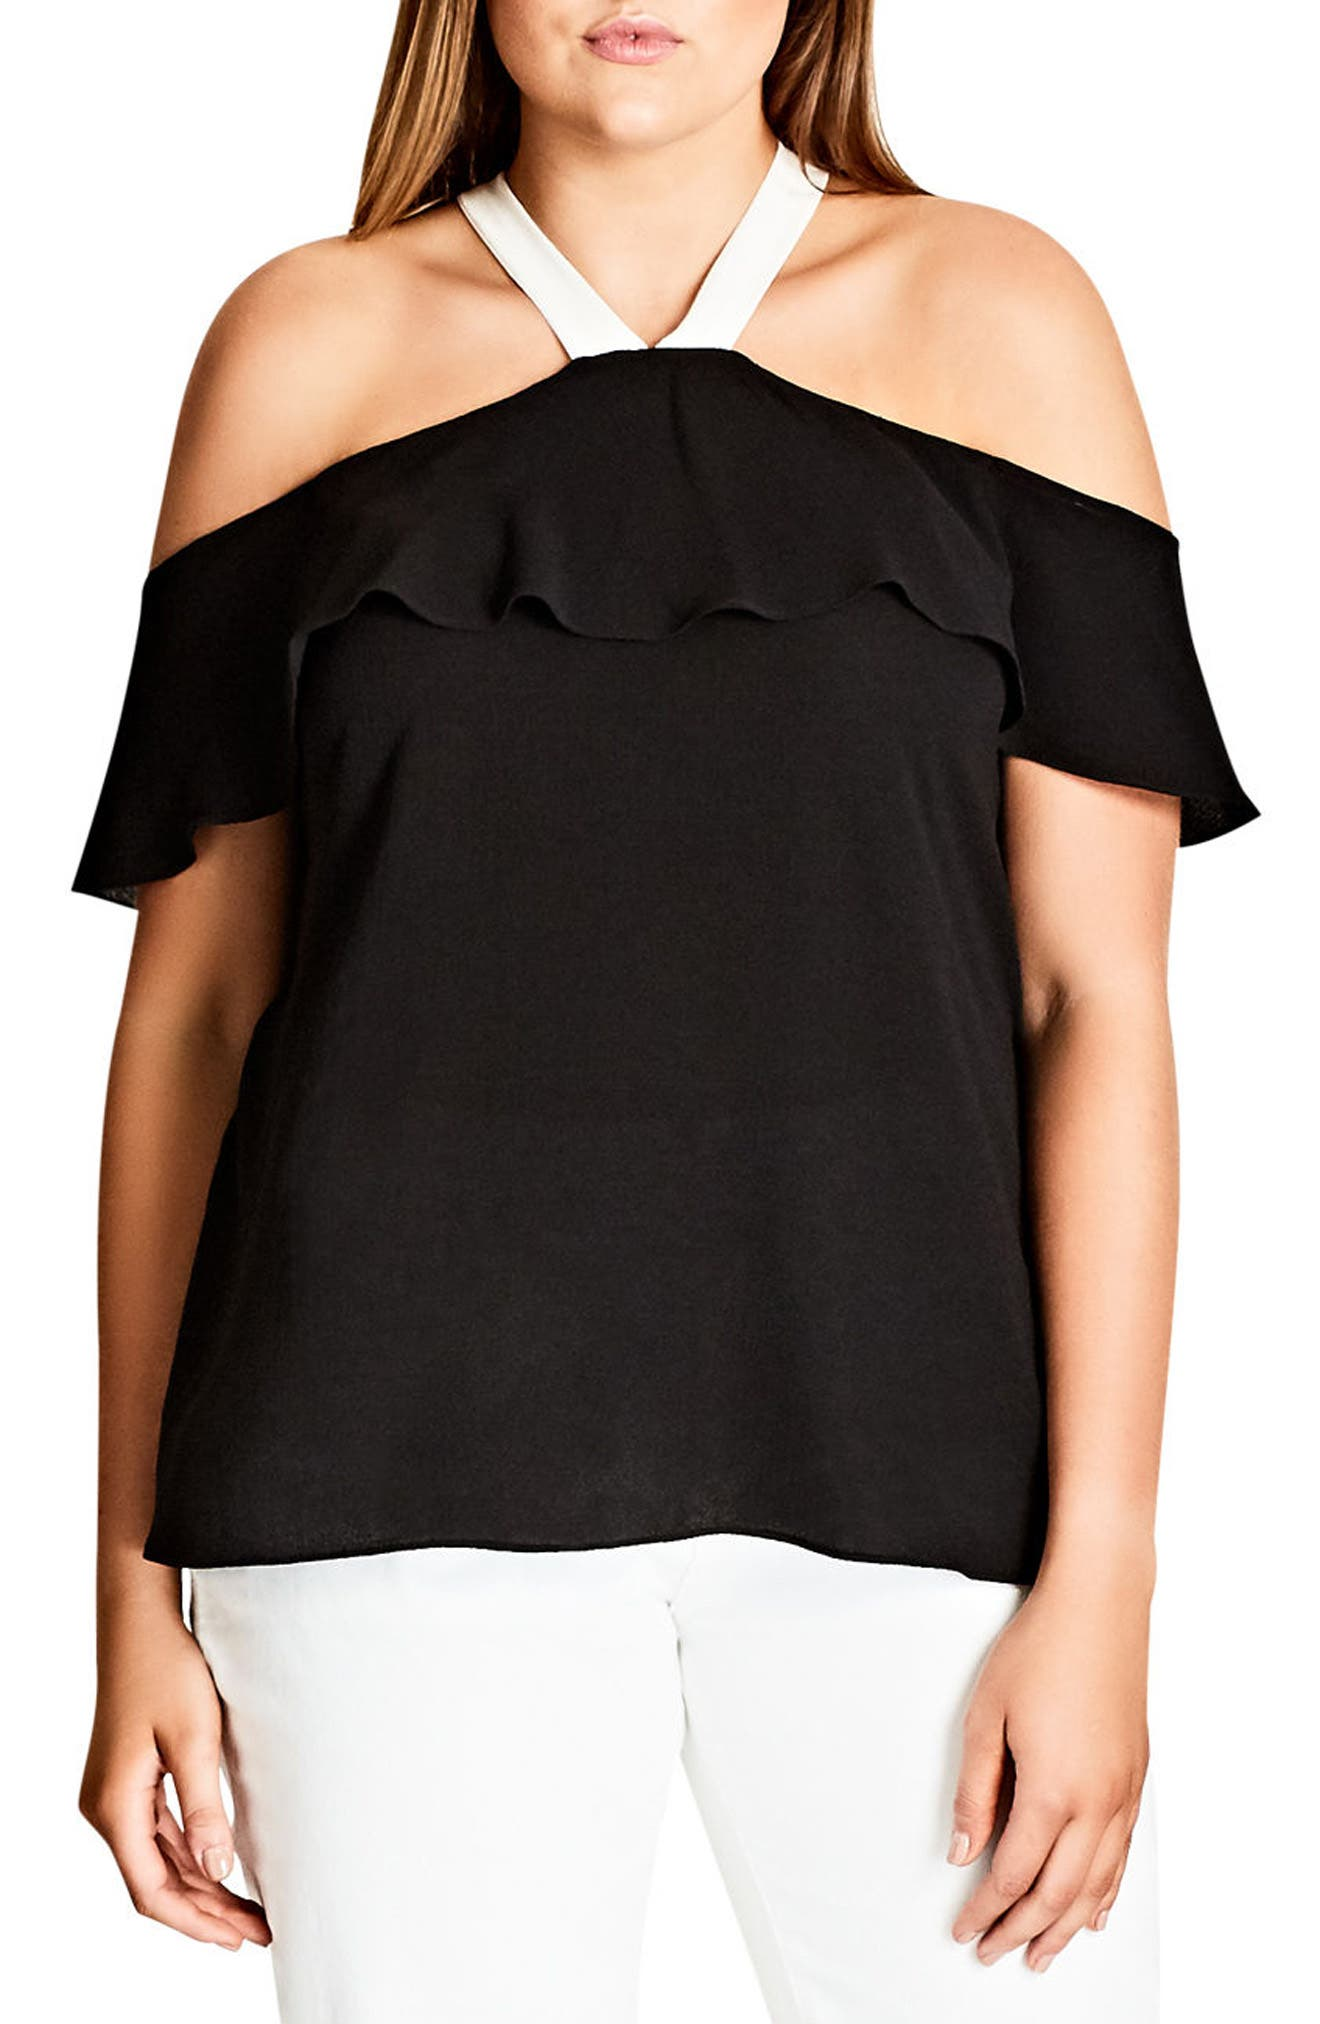 Alternate Image 1 Selected - City Chic Ashi Off the Shoulder Top (Plus Size)